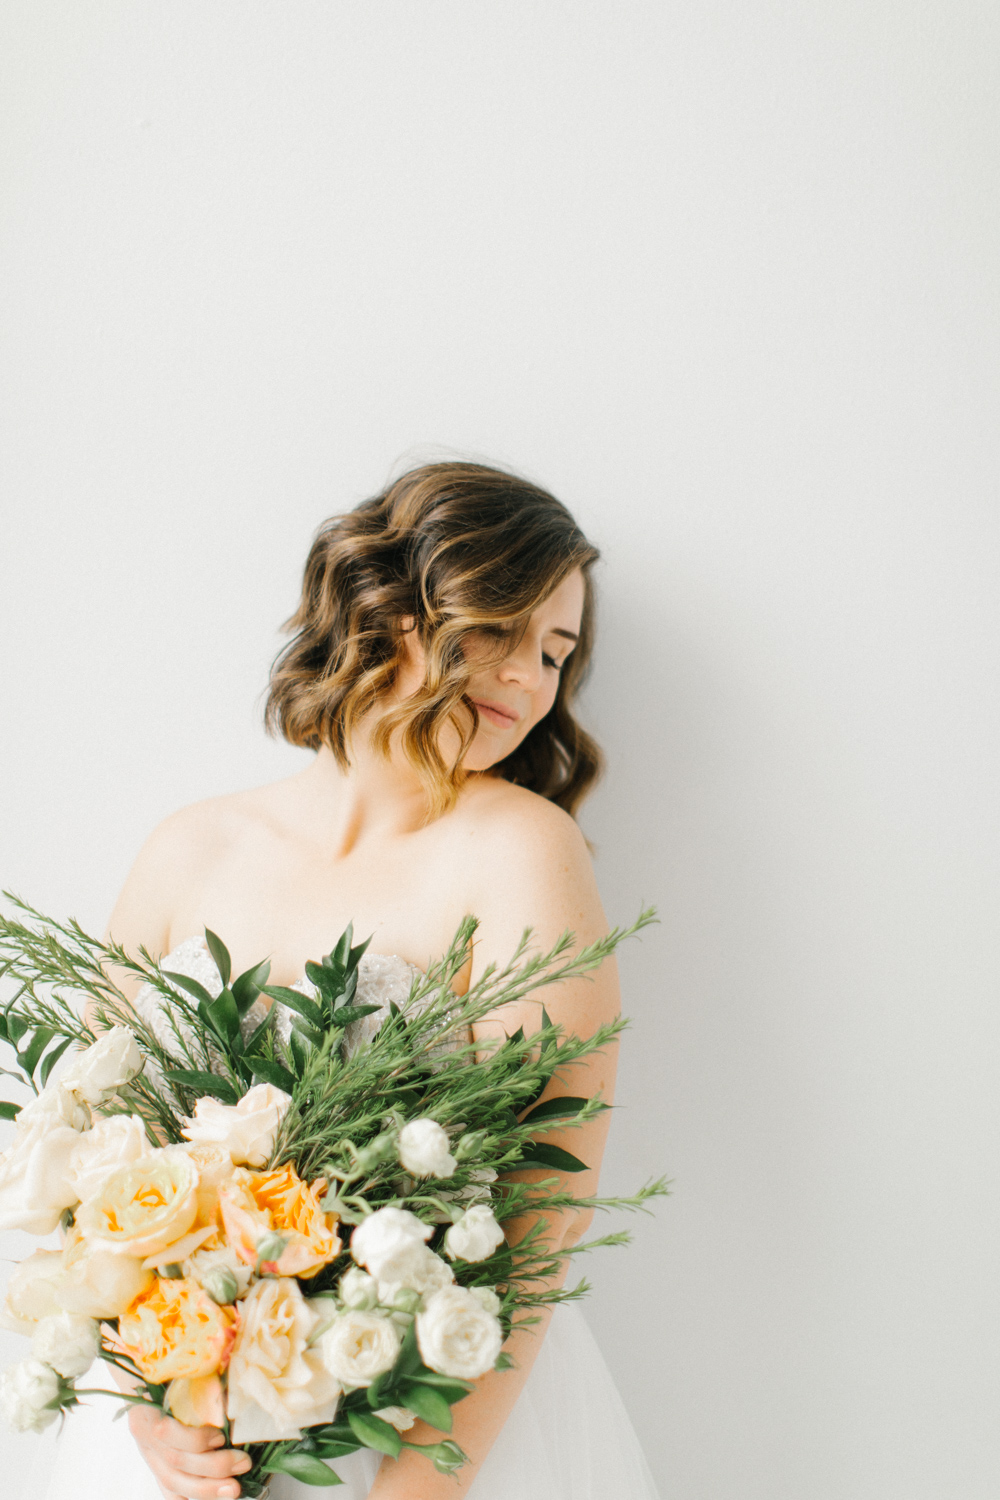 Seattle Fine Art Wedding Photographer | Seattle Downtown White Studio Bridal Session | Stunning Wedding Bouquet | Seattle Bride | Seattle Wedding | Photography Studio Space | Emma Rose Company Wedding Photography-18.jpg